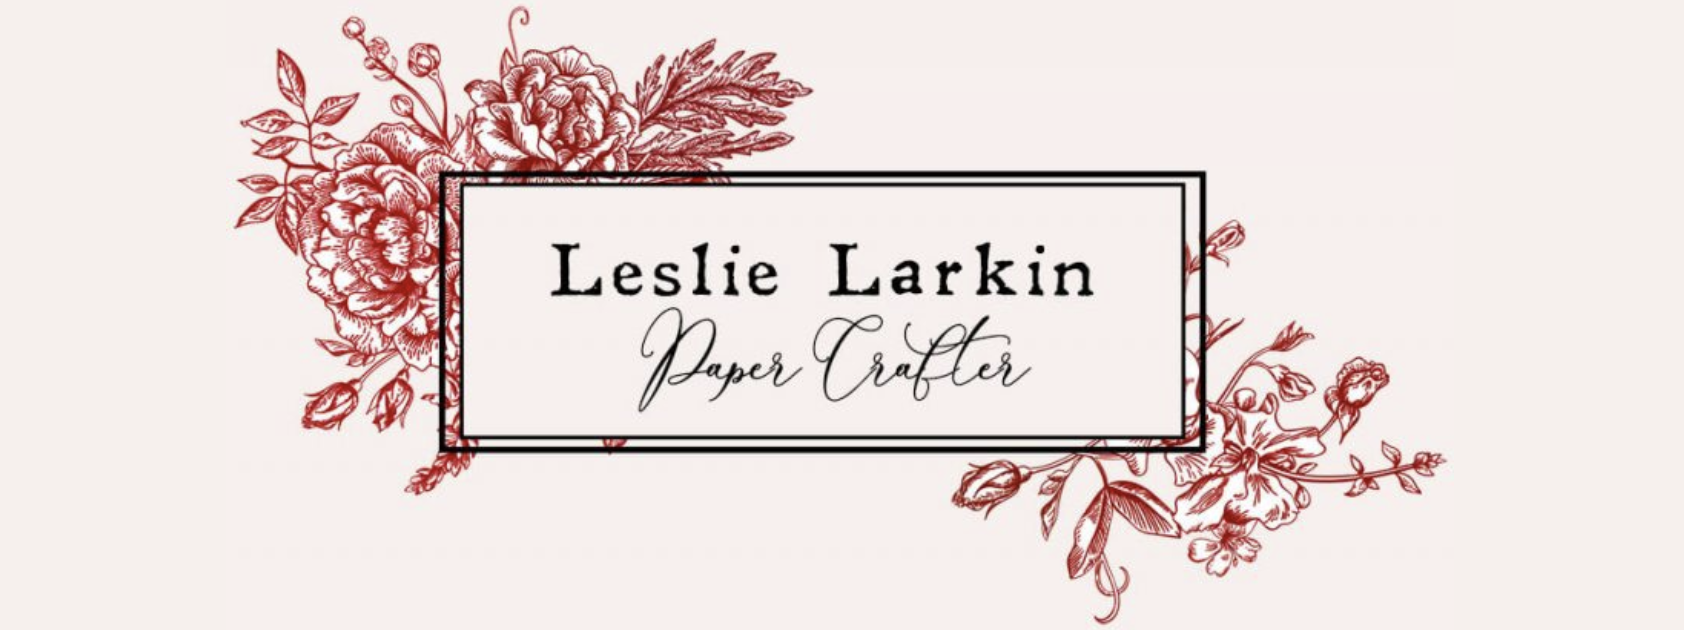 Leslie Larkin Paper Crafter